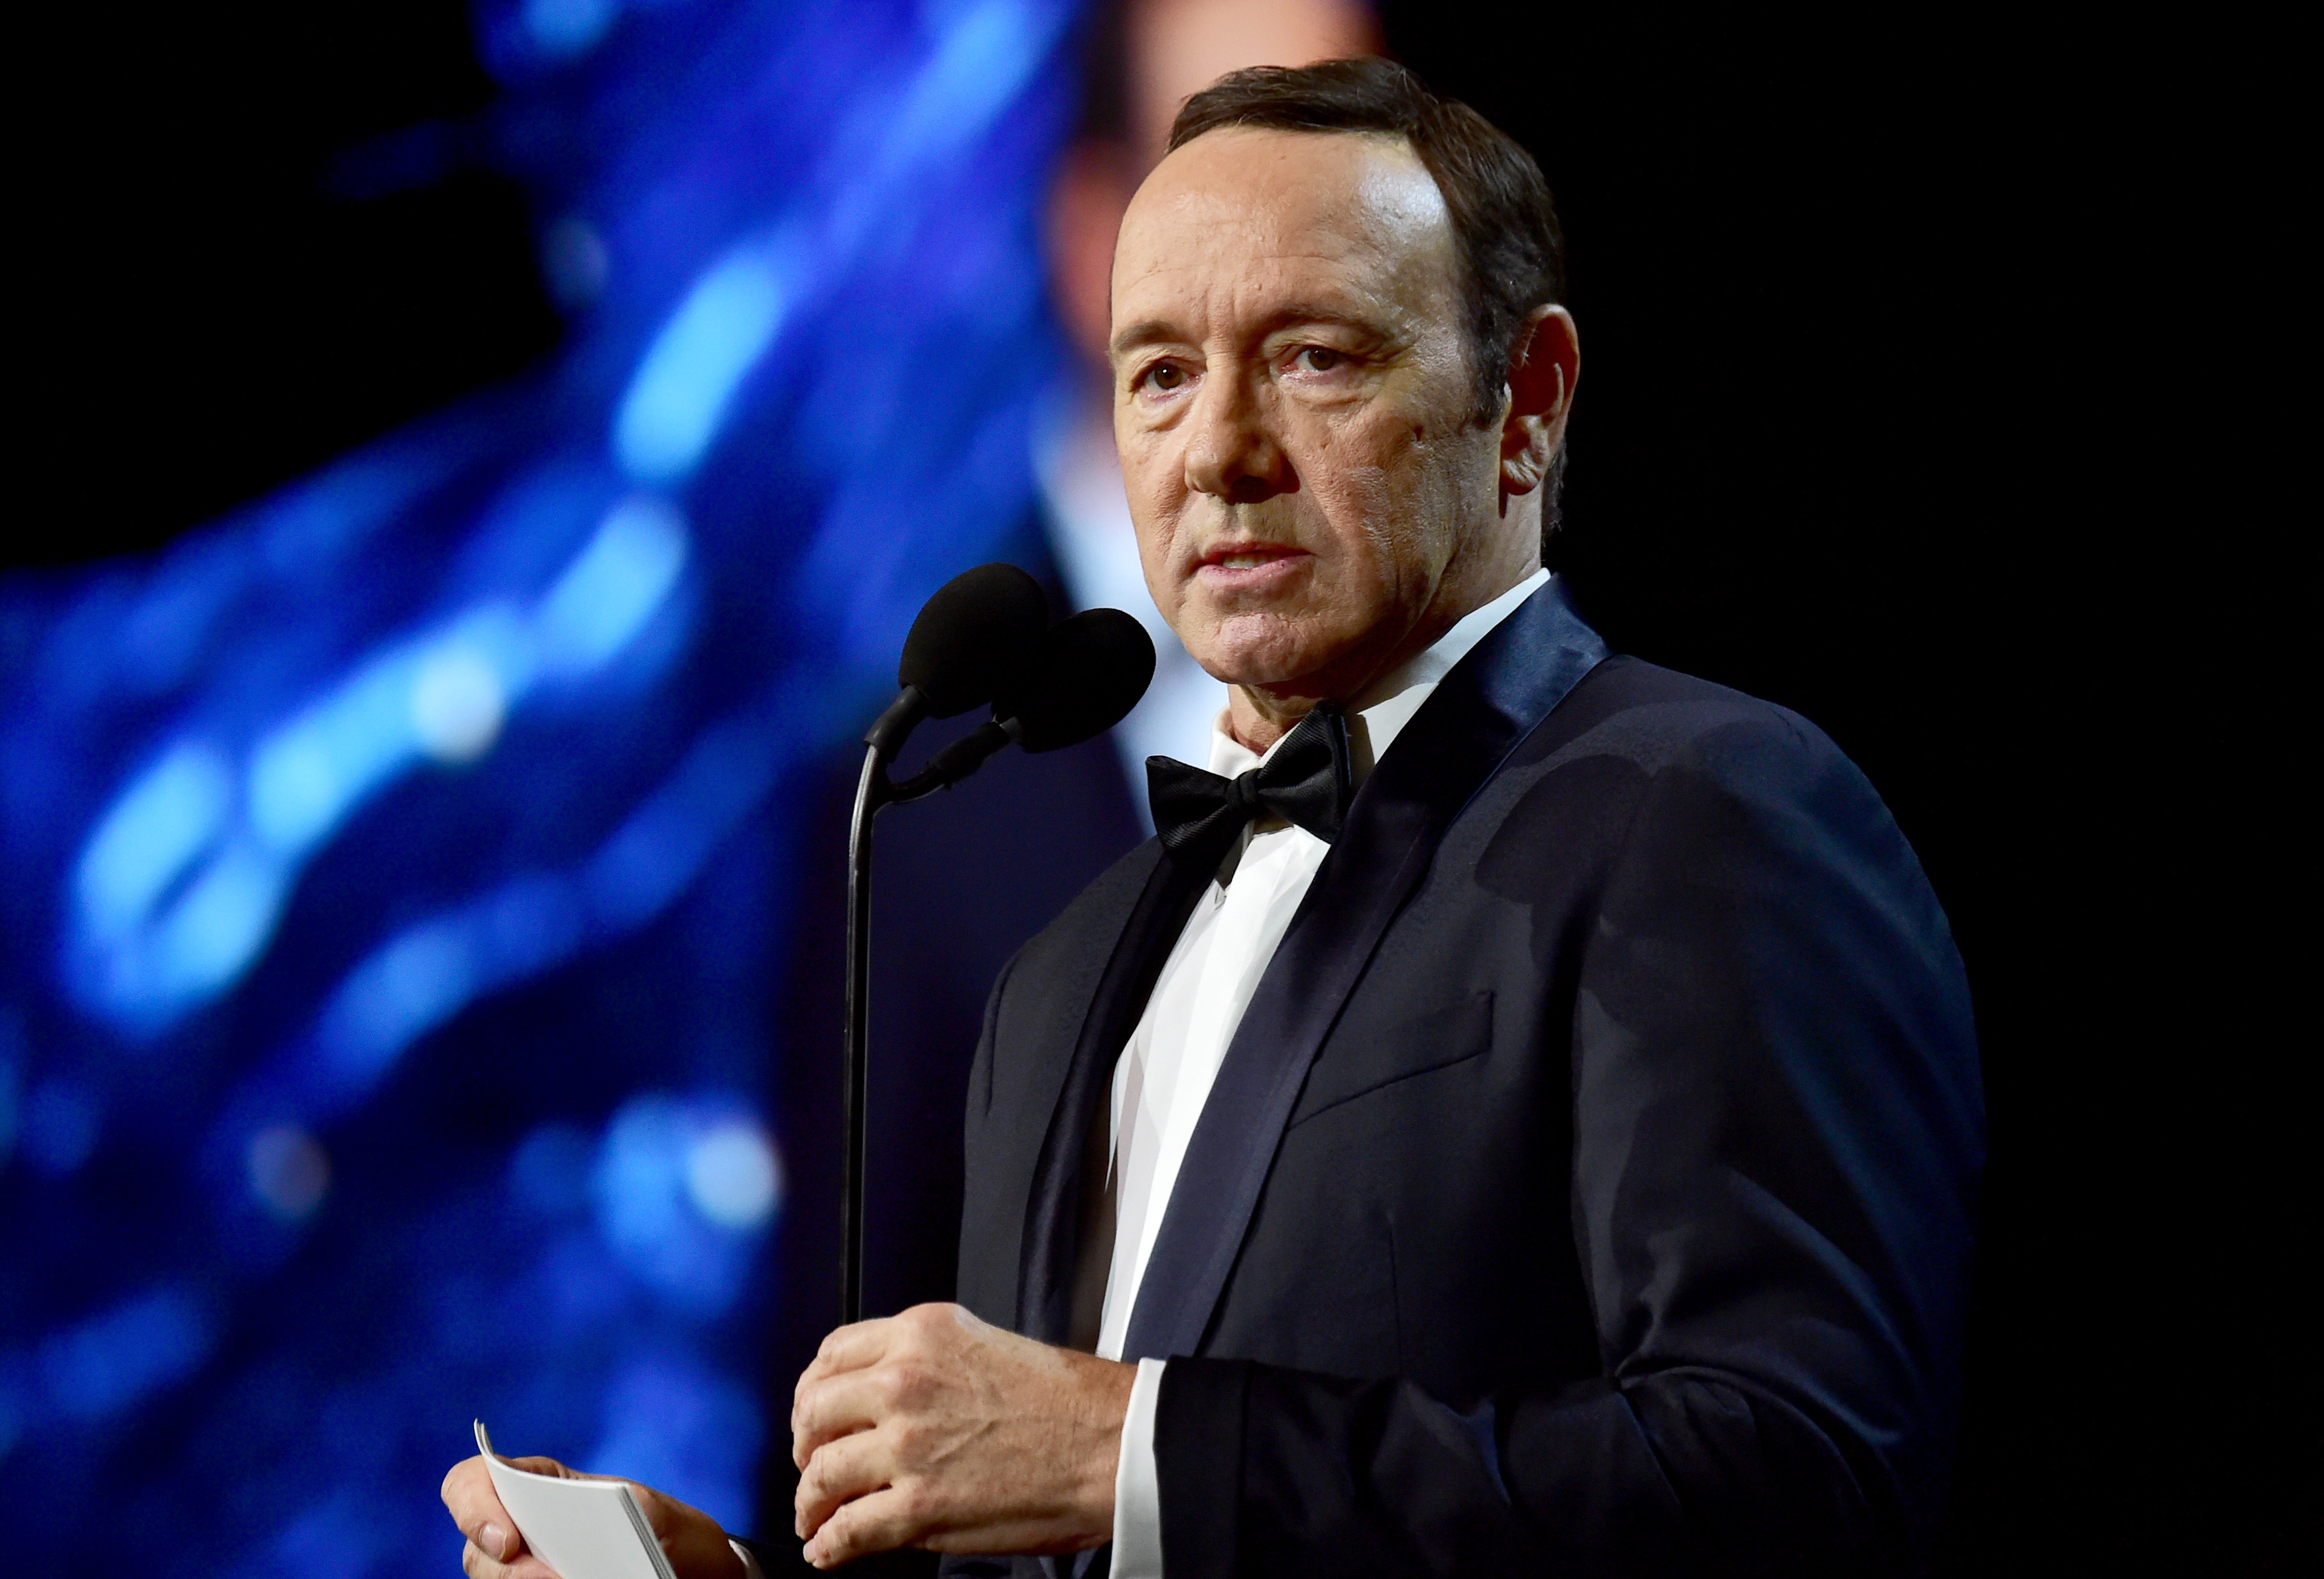 Kevin Spacey at the 2017 AMD British Academy Britannia Awards  in Beverly Hills, Calif. on October 27, 2017.